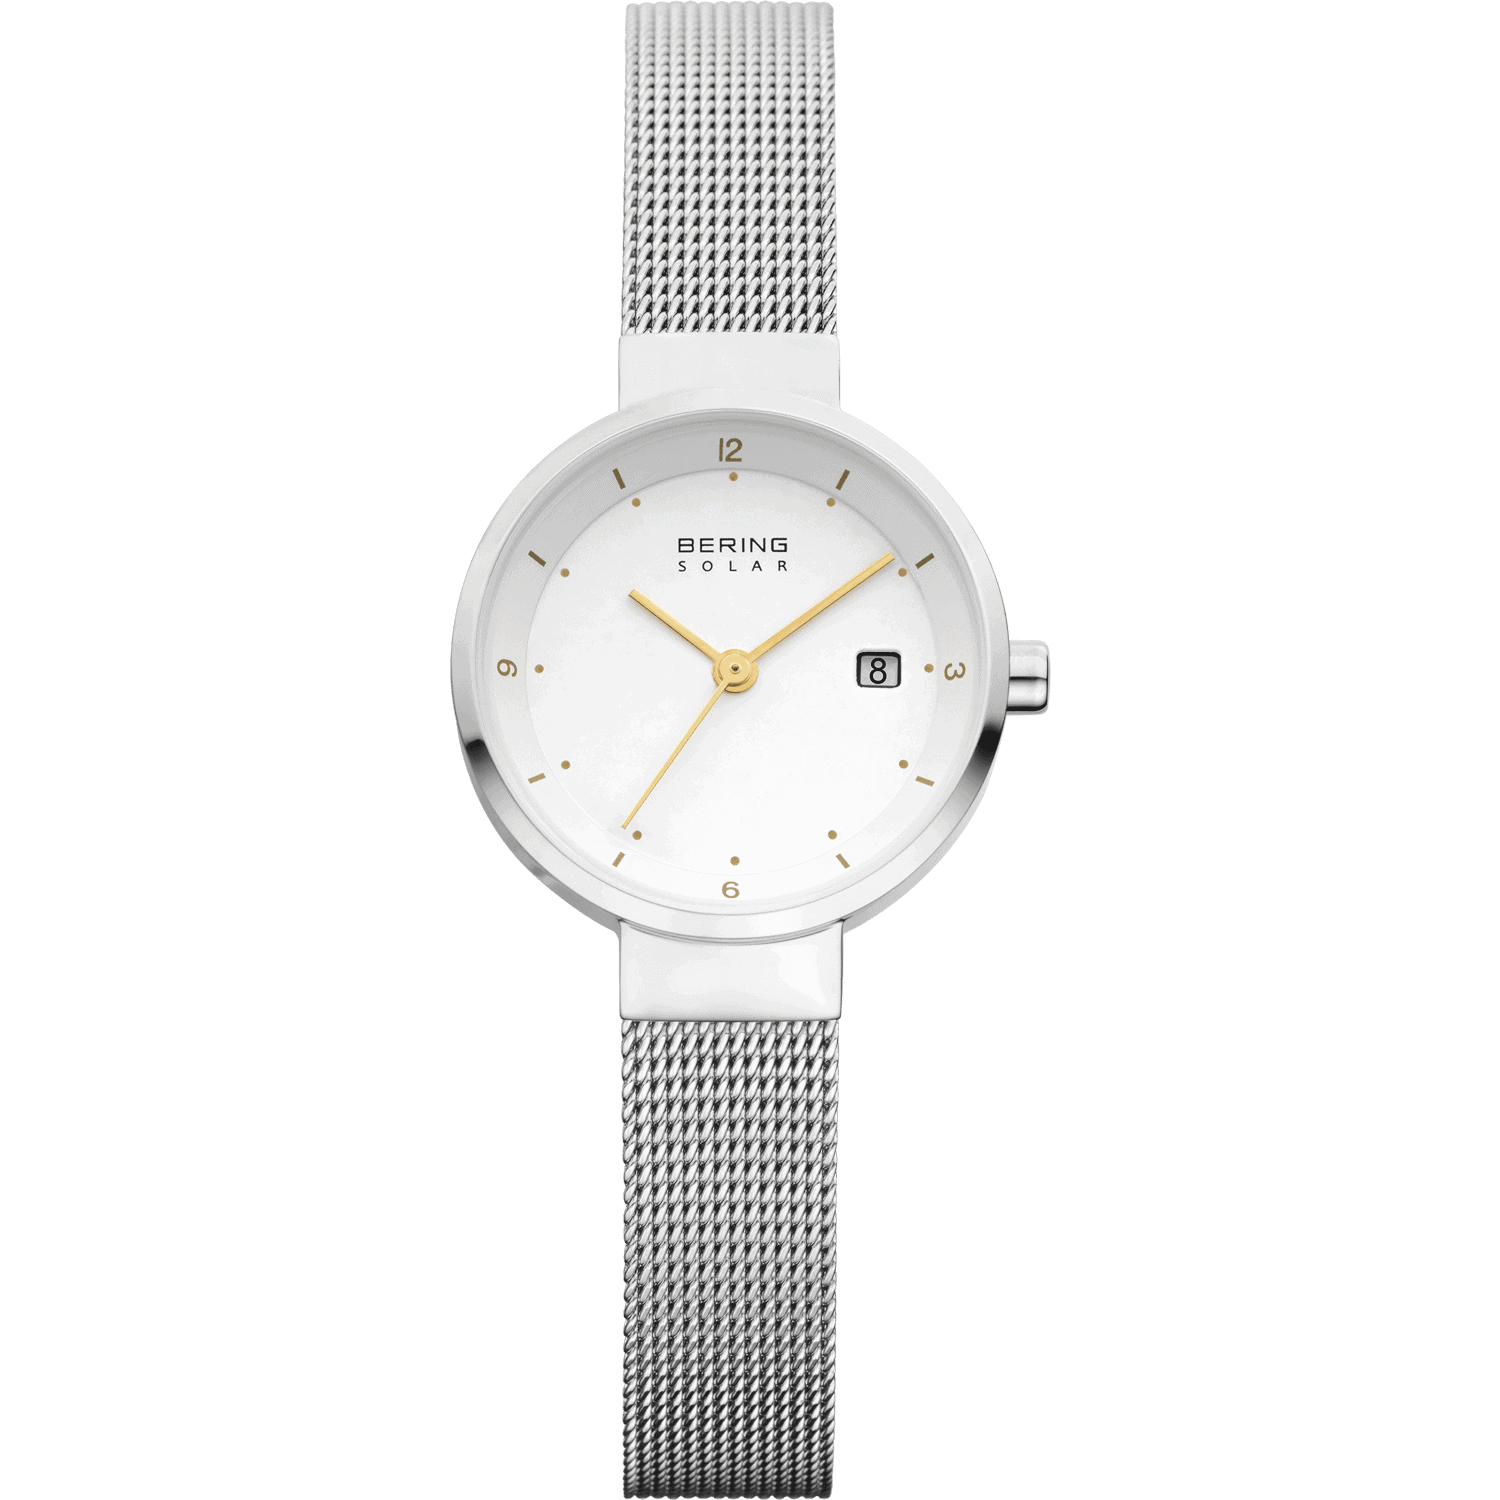 Solar 14426-001 Women's Watch - COCOMI